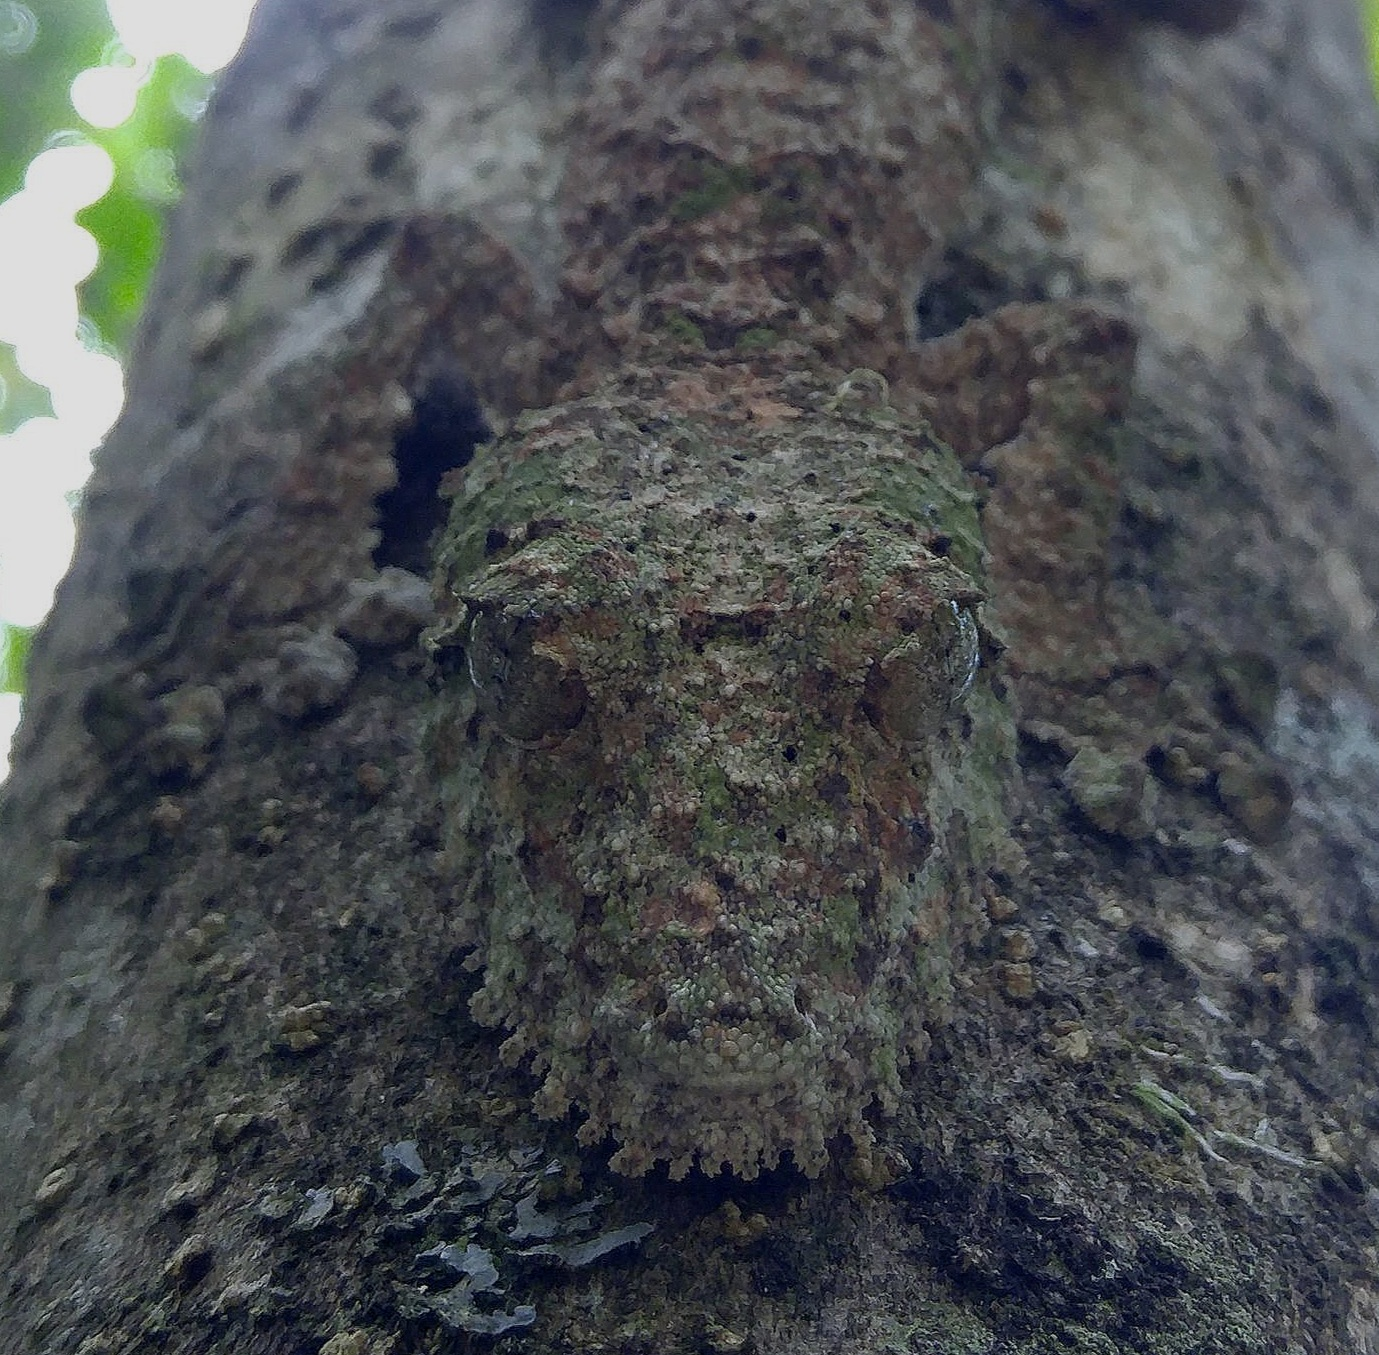 That beard is amazing.  Uroplatus fimbriatus.